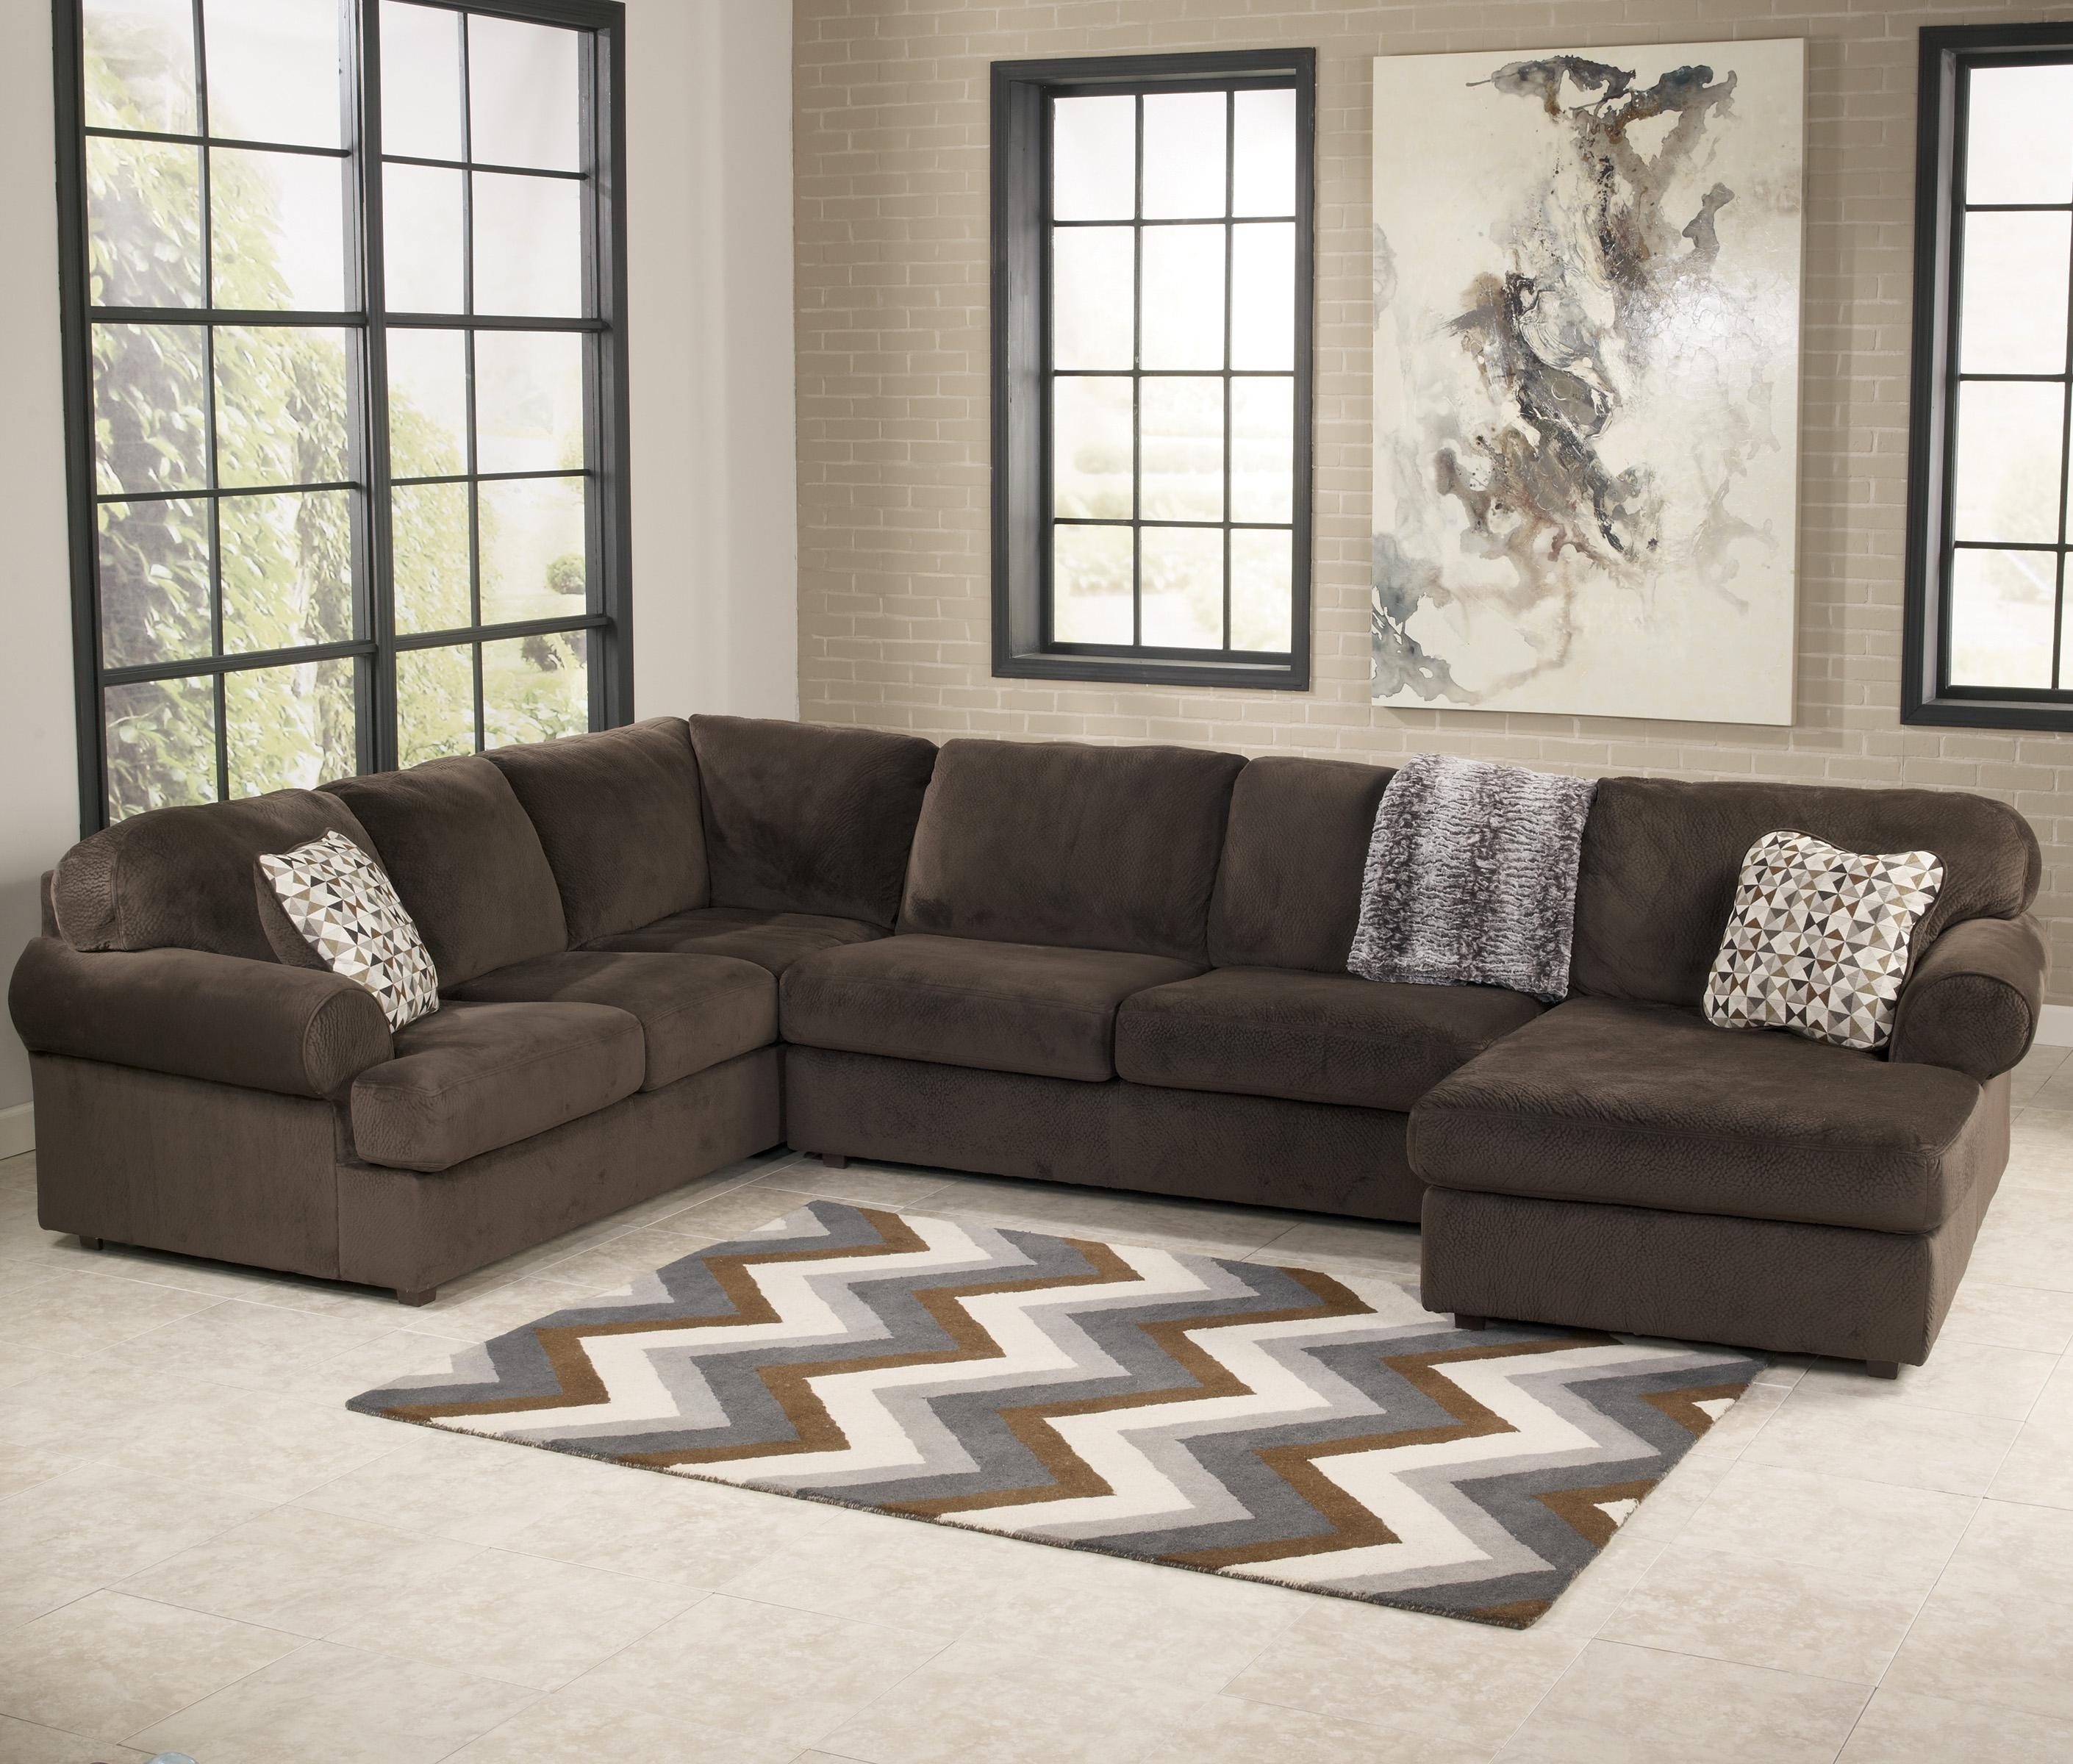 Sectional Sofas Dallas Tx | Best Furniture For Home Design Styles regarding Dallas Texas Sectional Sofas (Image 8 of 10)